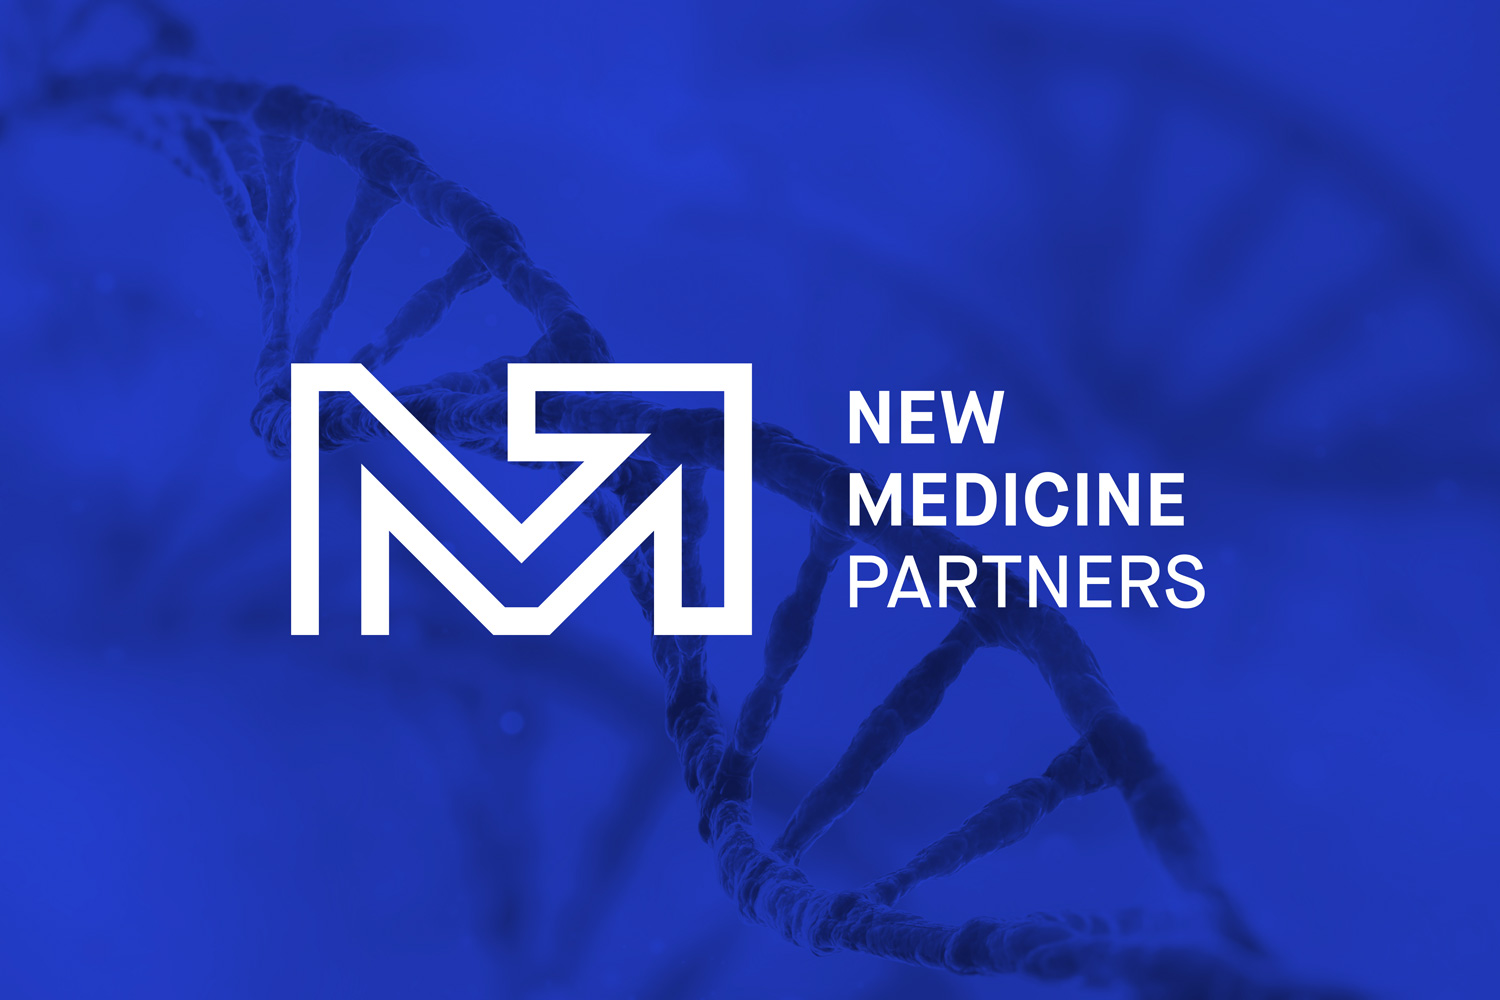 New Medicine Partners - We worked with the founding partners of a start-up who are now developing smart health systems for governments and leaders of health services to develop a brand strategy, identity and website for their launch.View project